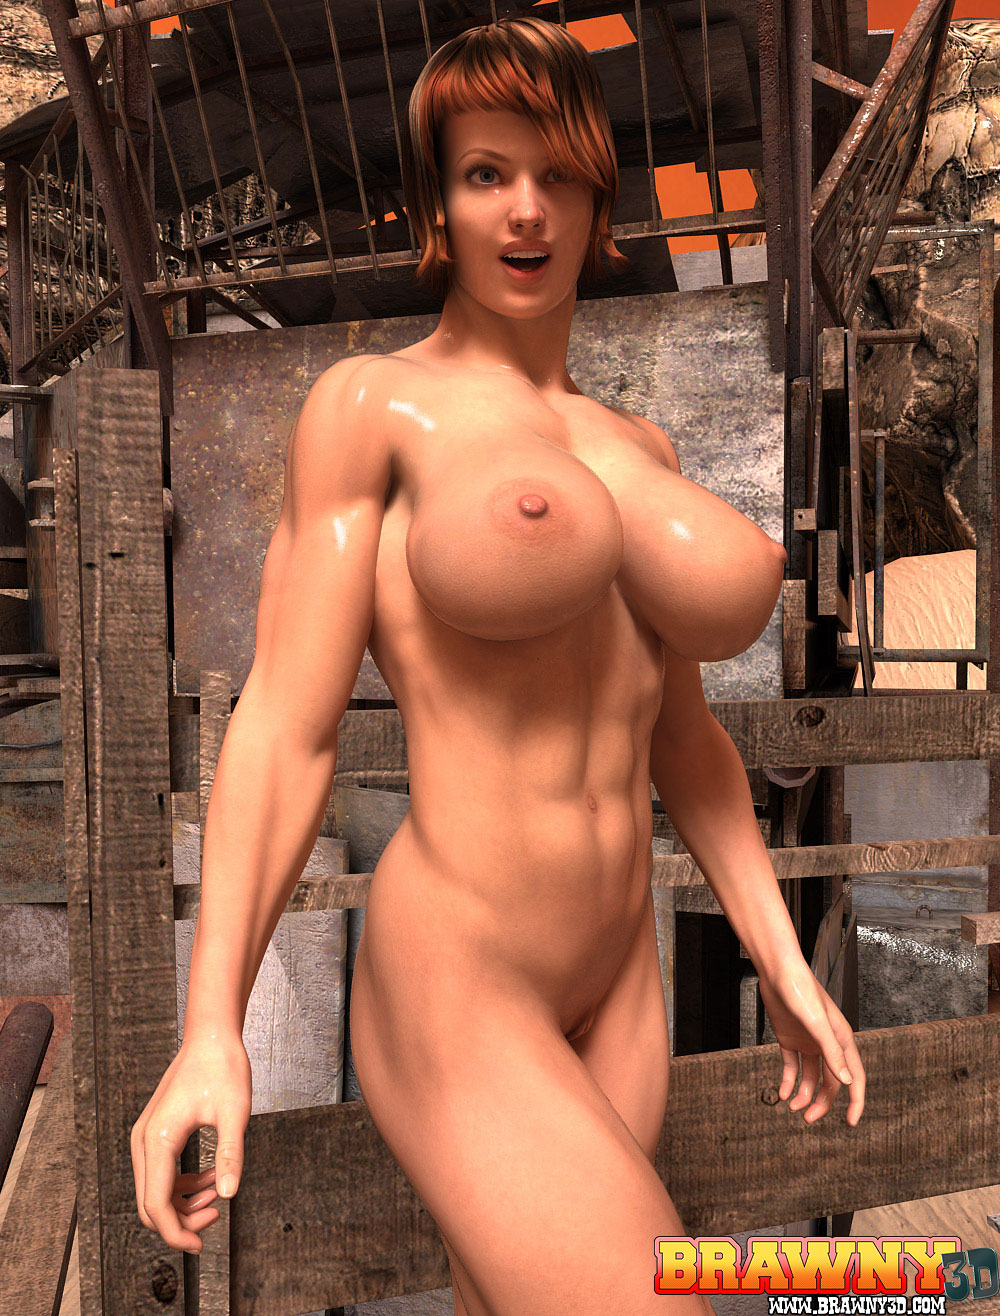 Sexy babes in nude 3d games download pron scenes